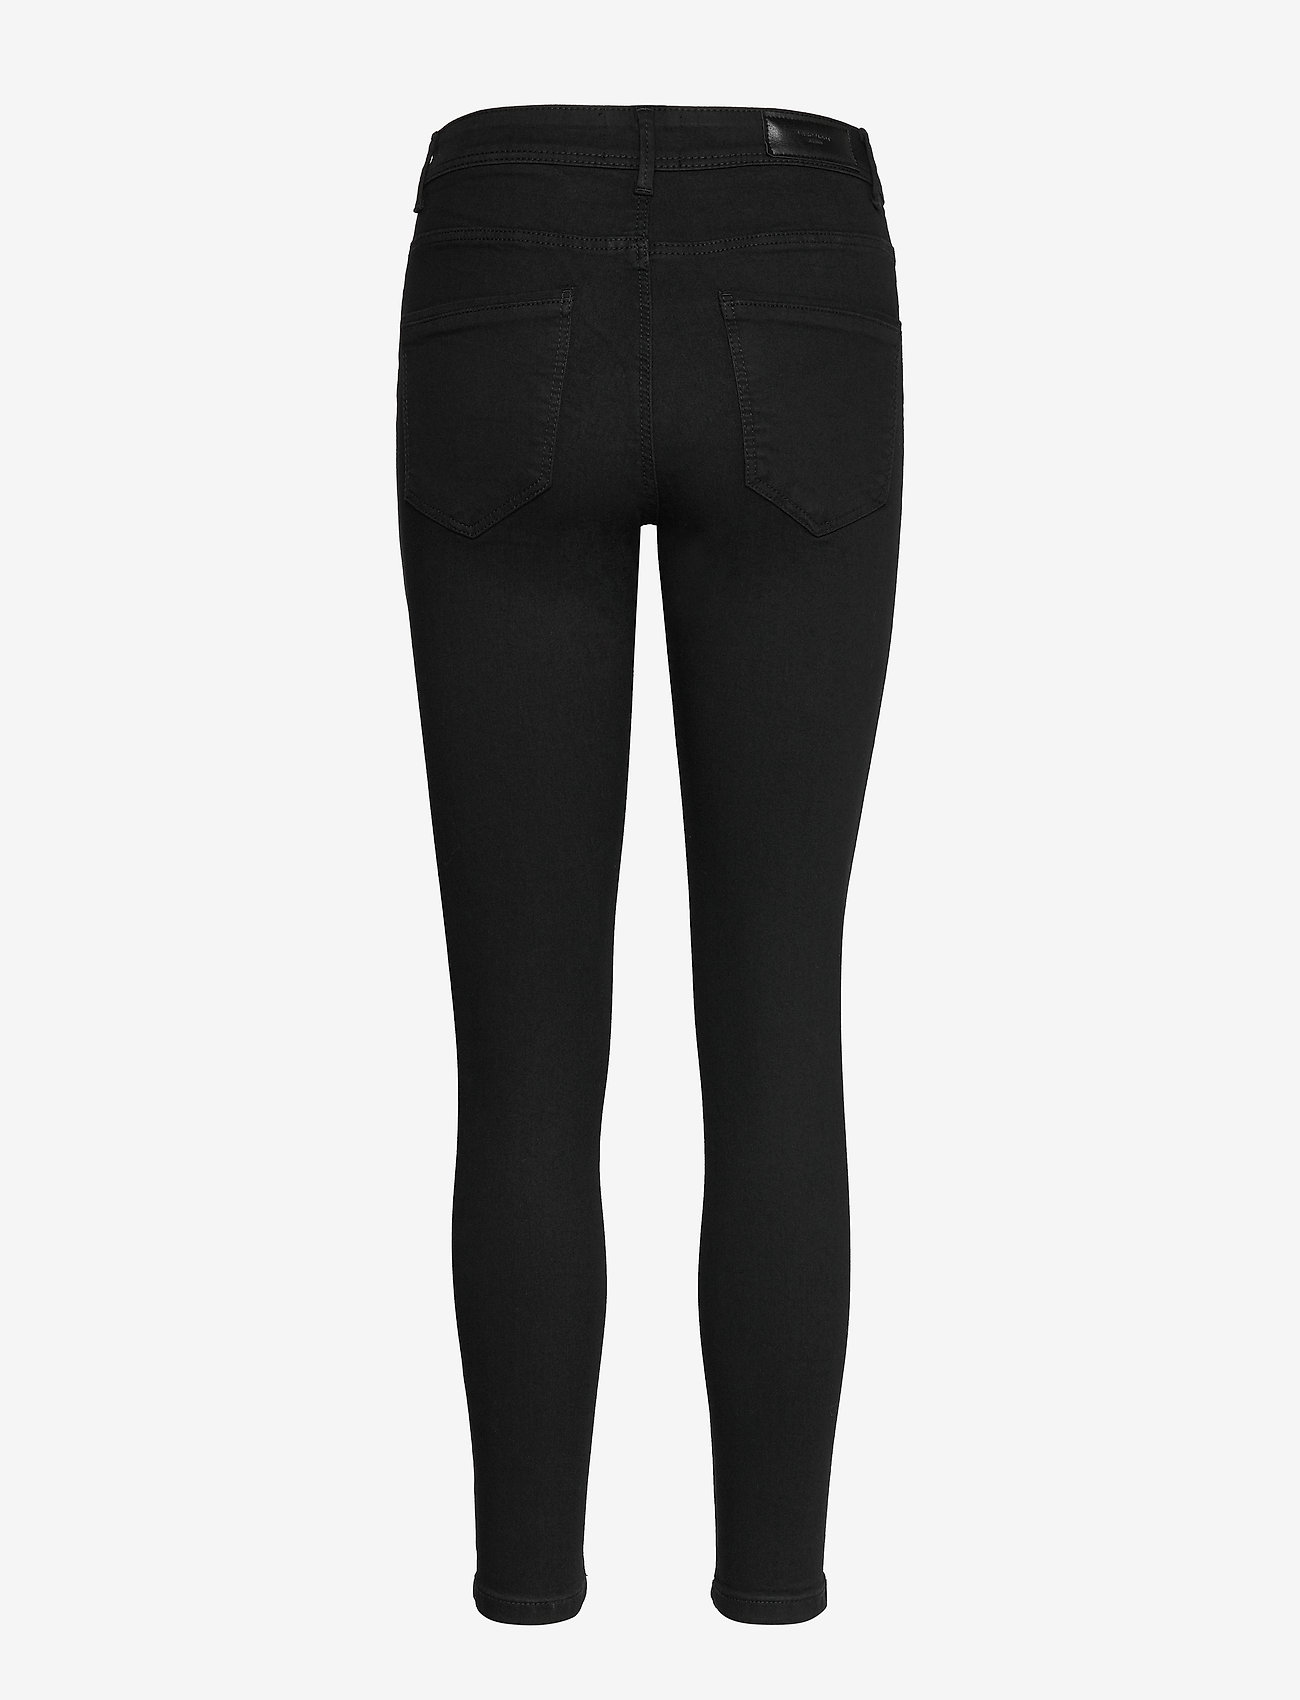 Vero Moda - VMTANYA MR S PIPING JEANS VI120 GA - skinny jeans - black - 1